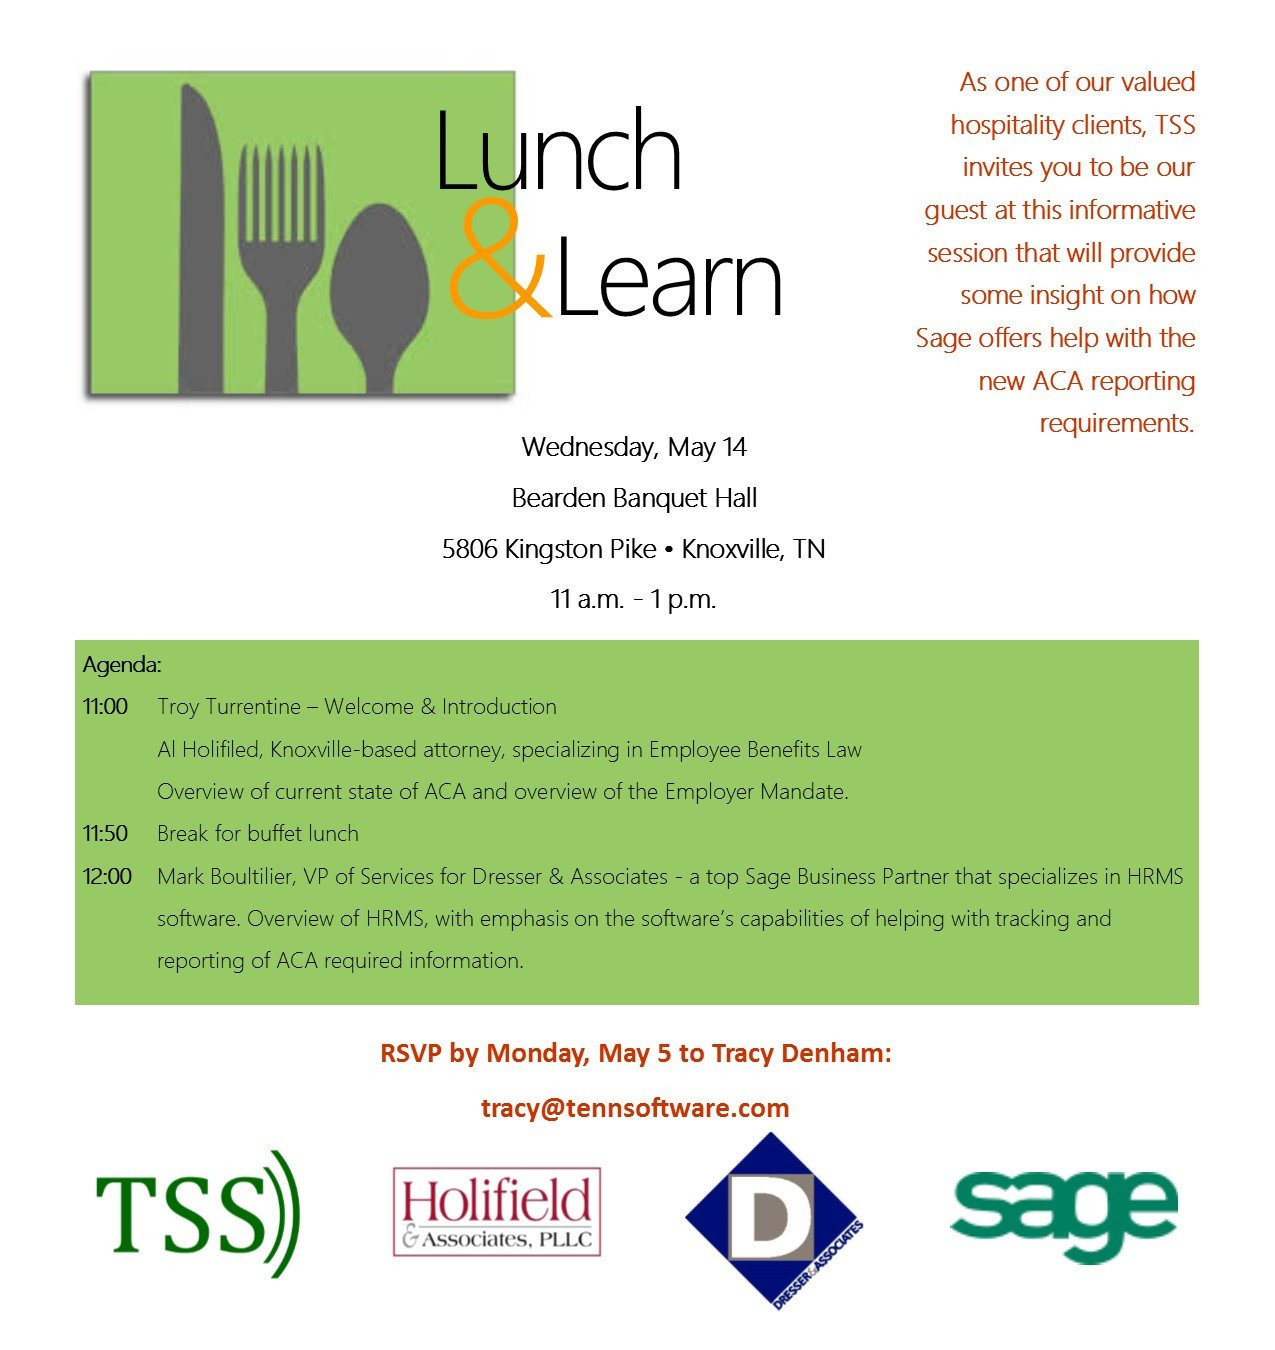 Lunch and Learn Invitations Hospitality Industry Lunch & Learn Aca Reporting – Tss